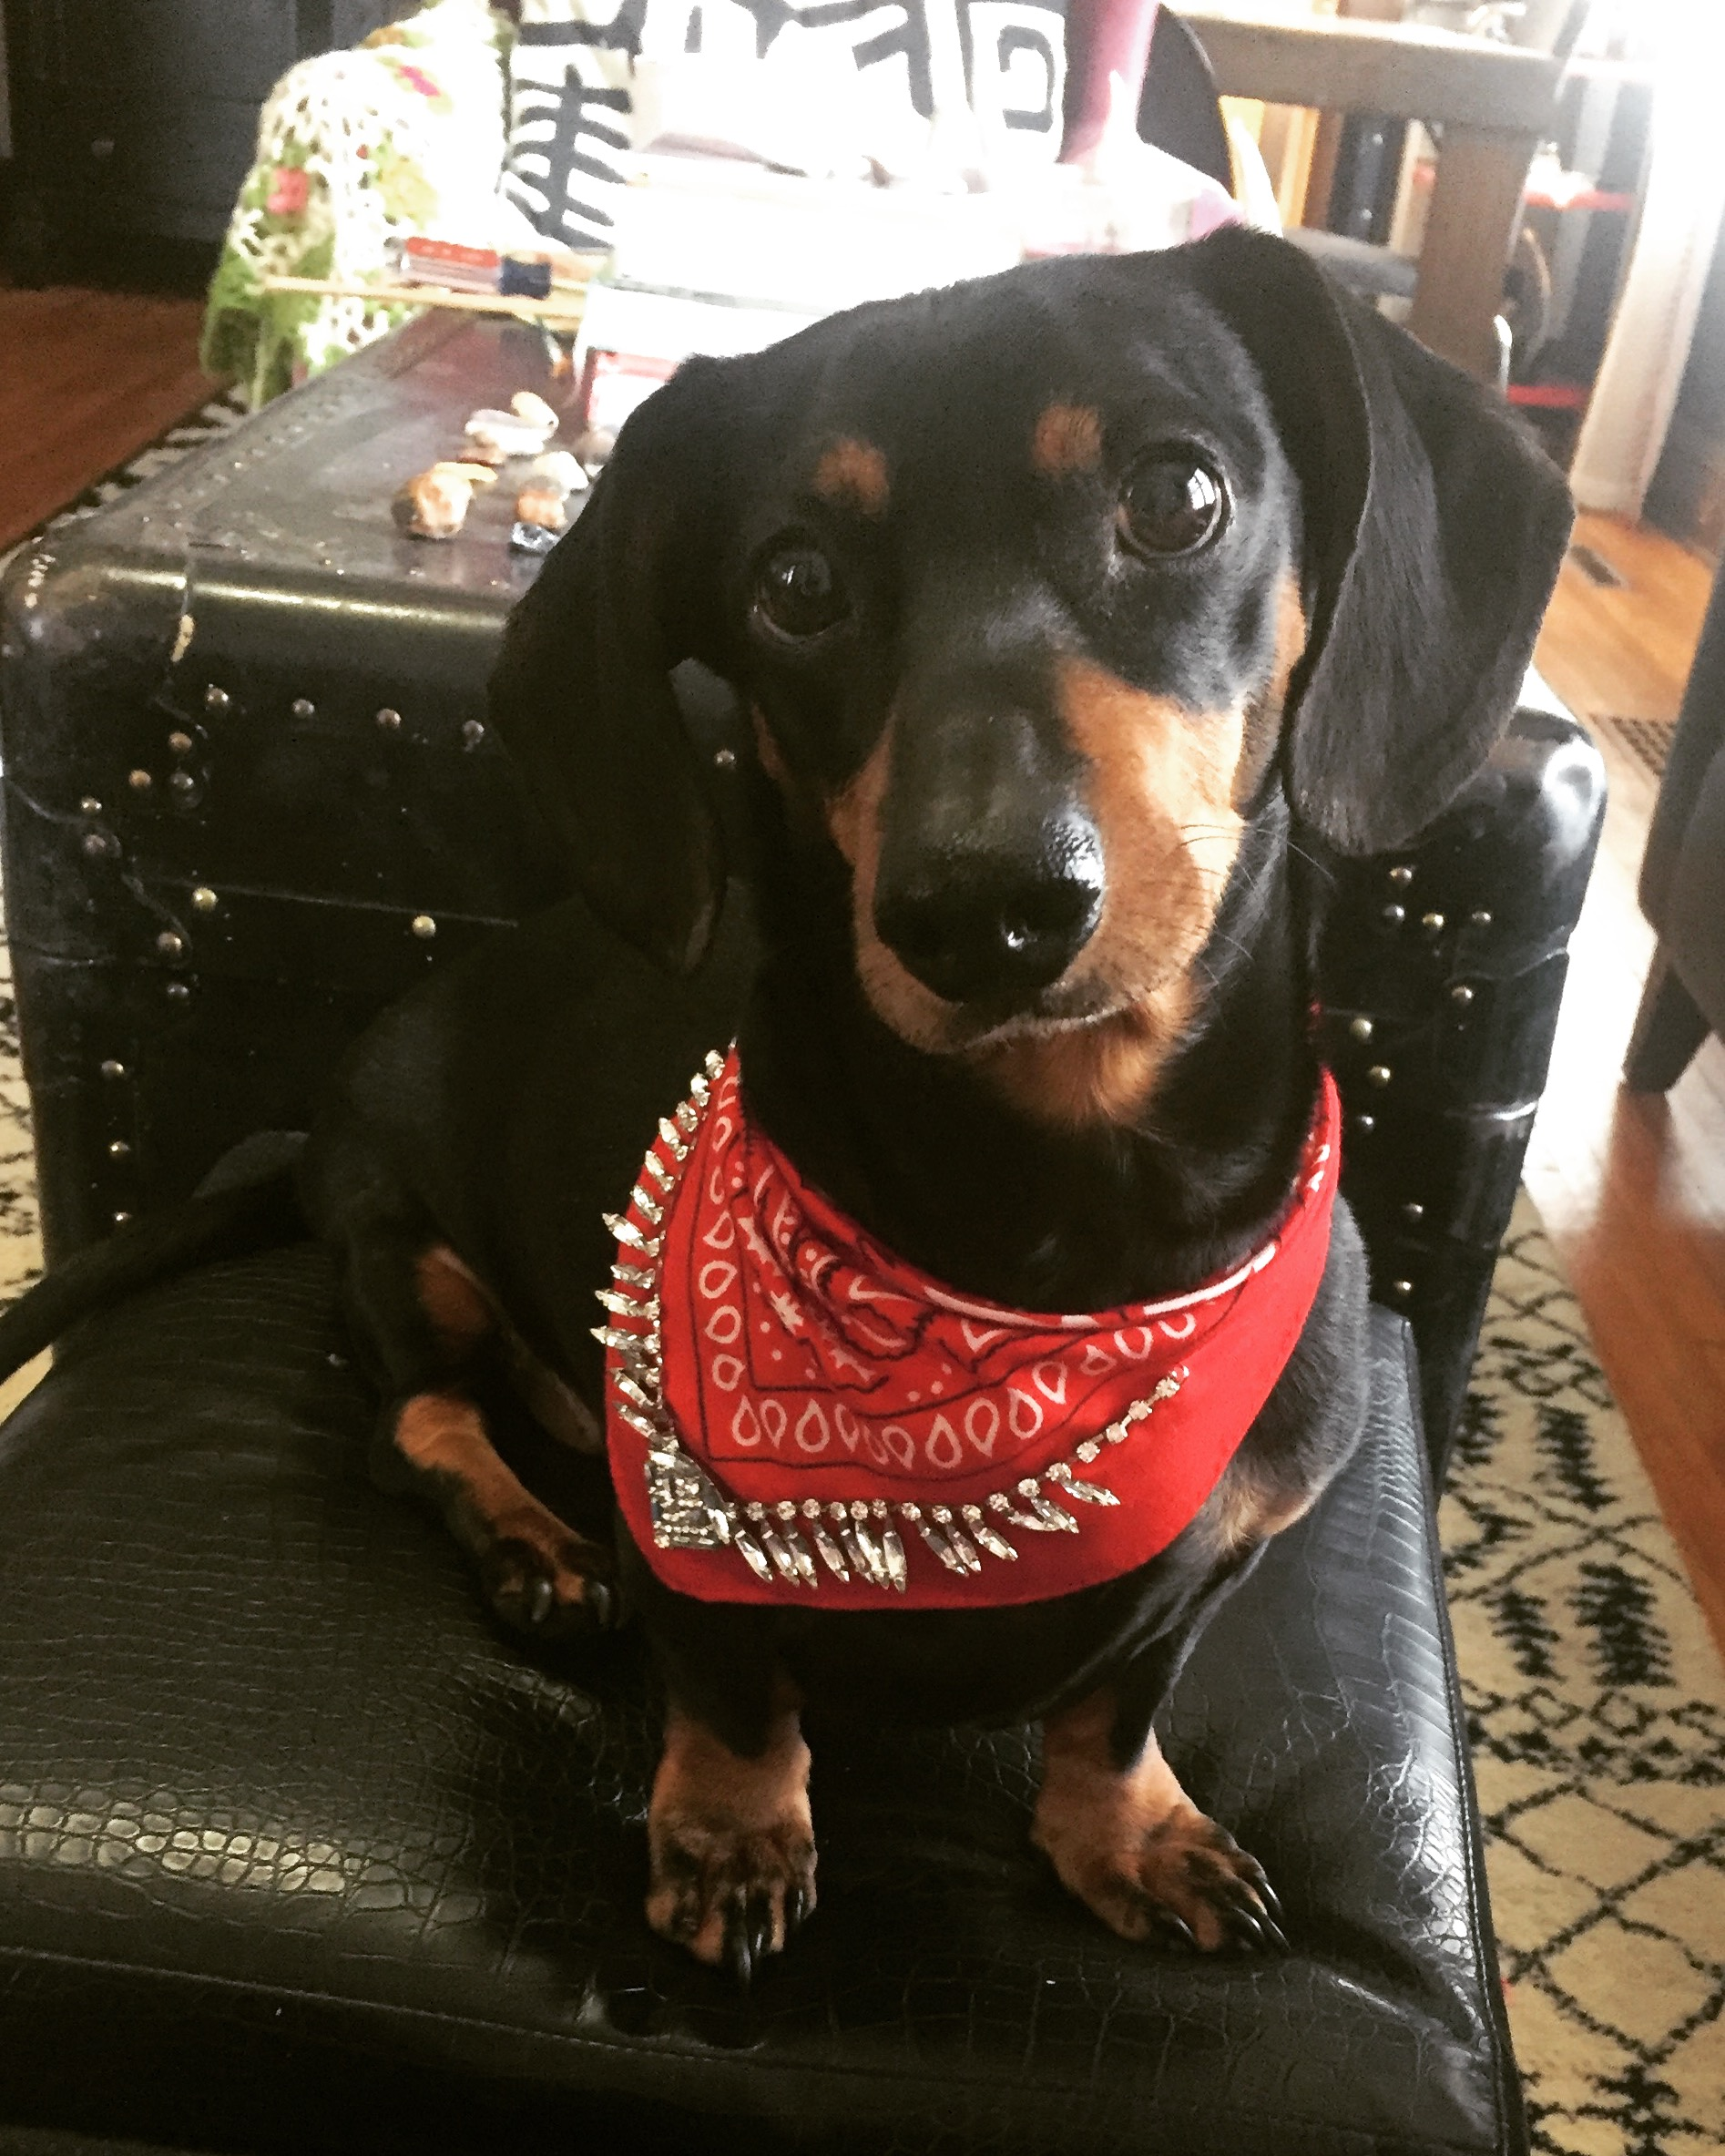 If Max Wiener in his rhinestone bandana isn't the picture of success, I don't know what is. :)